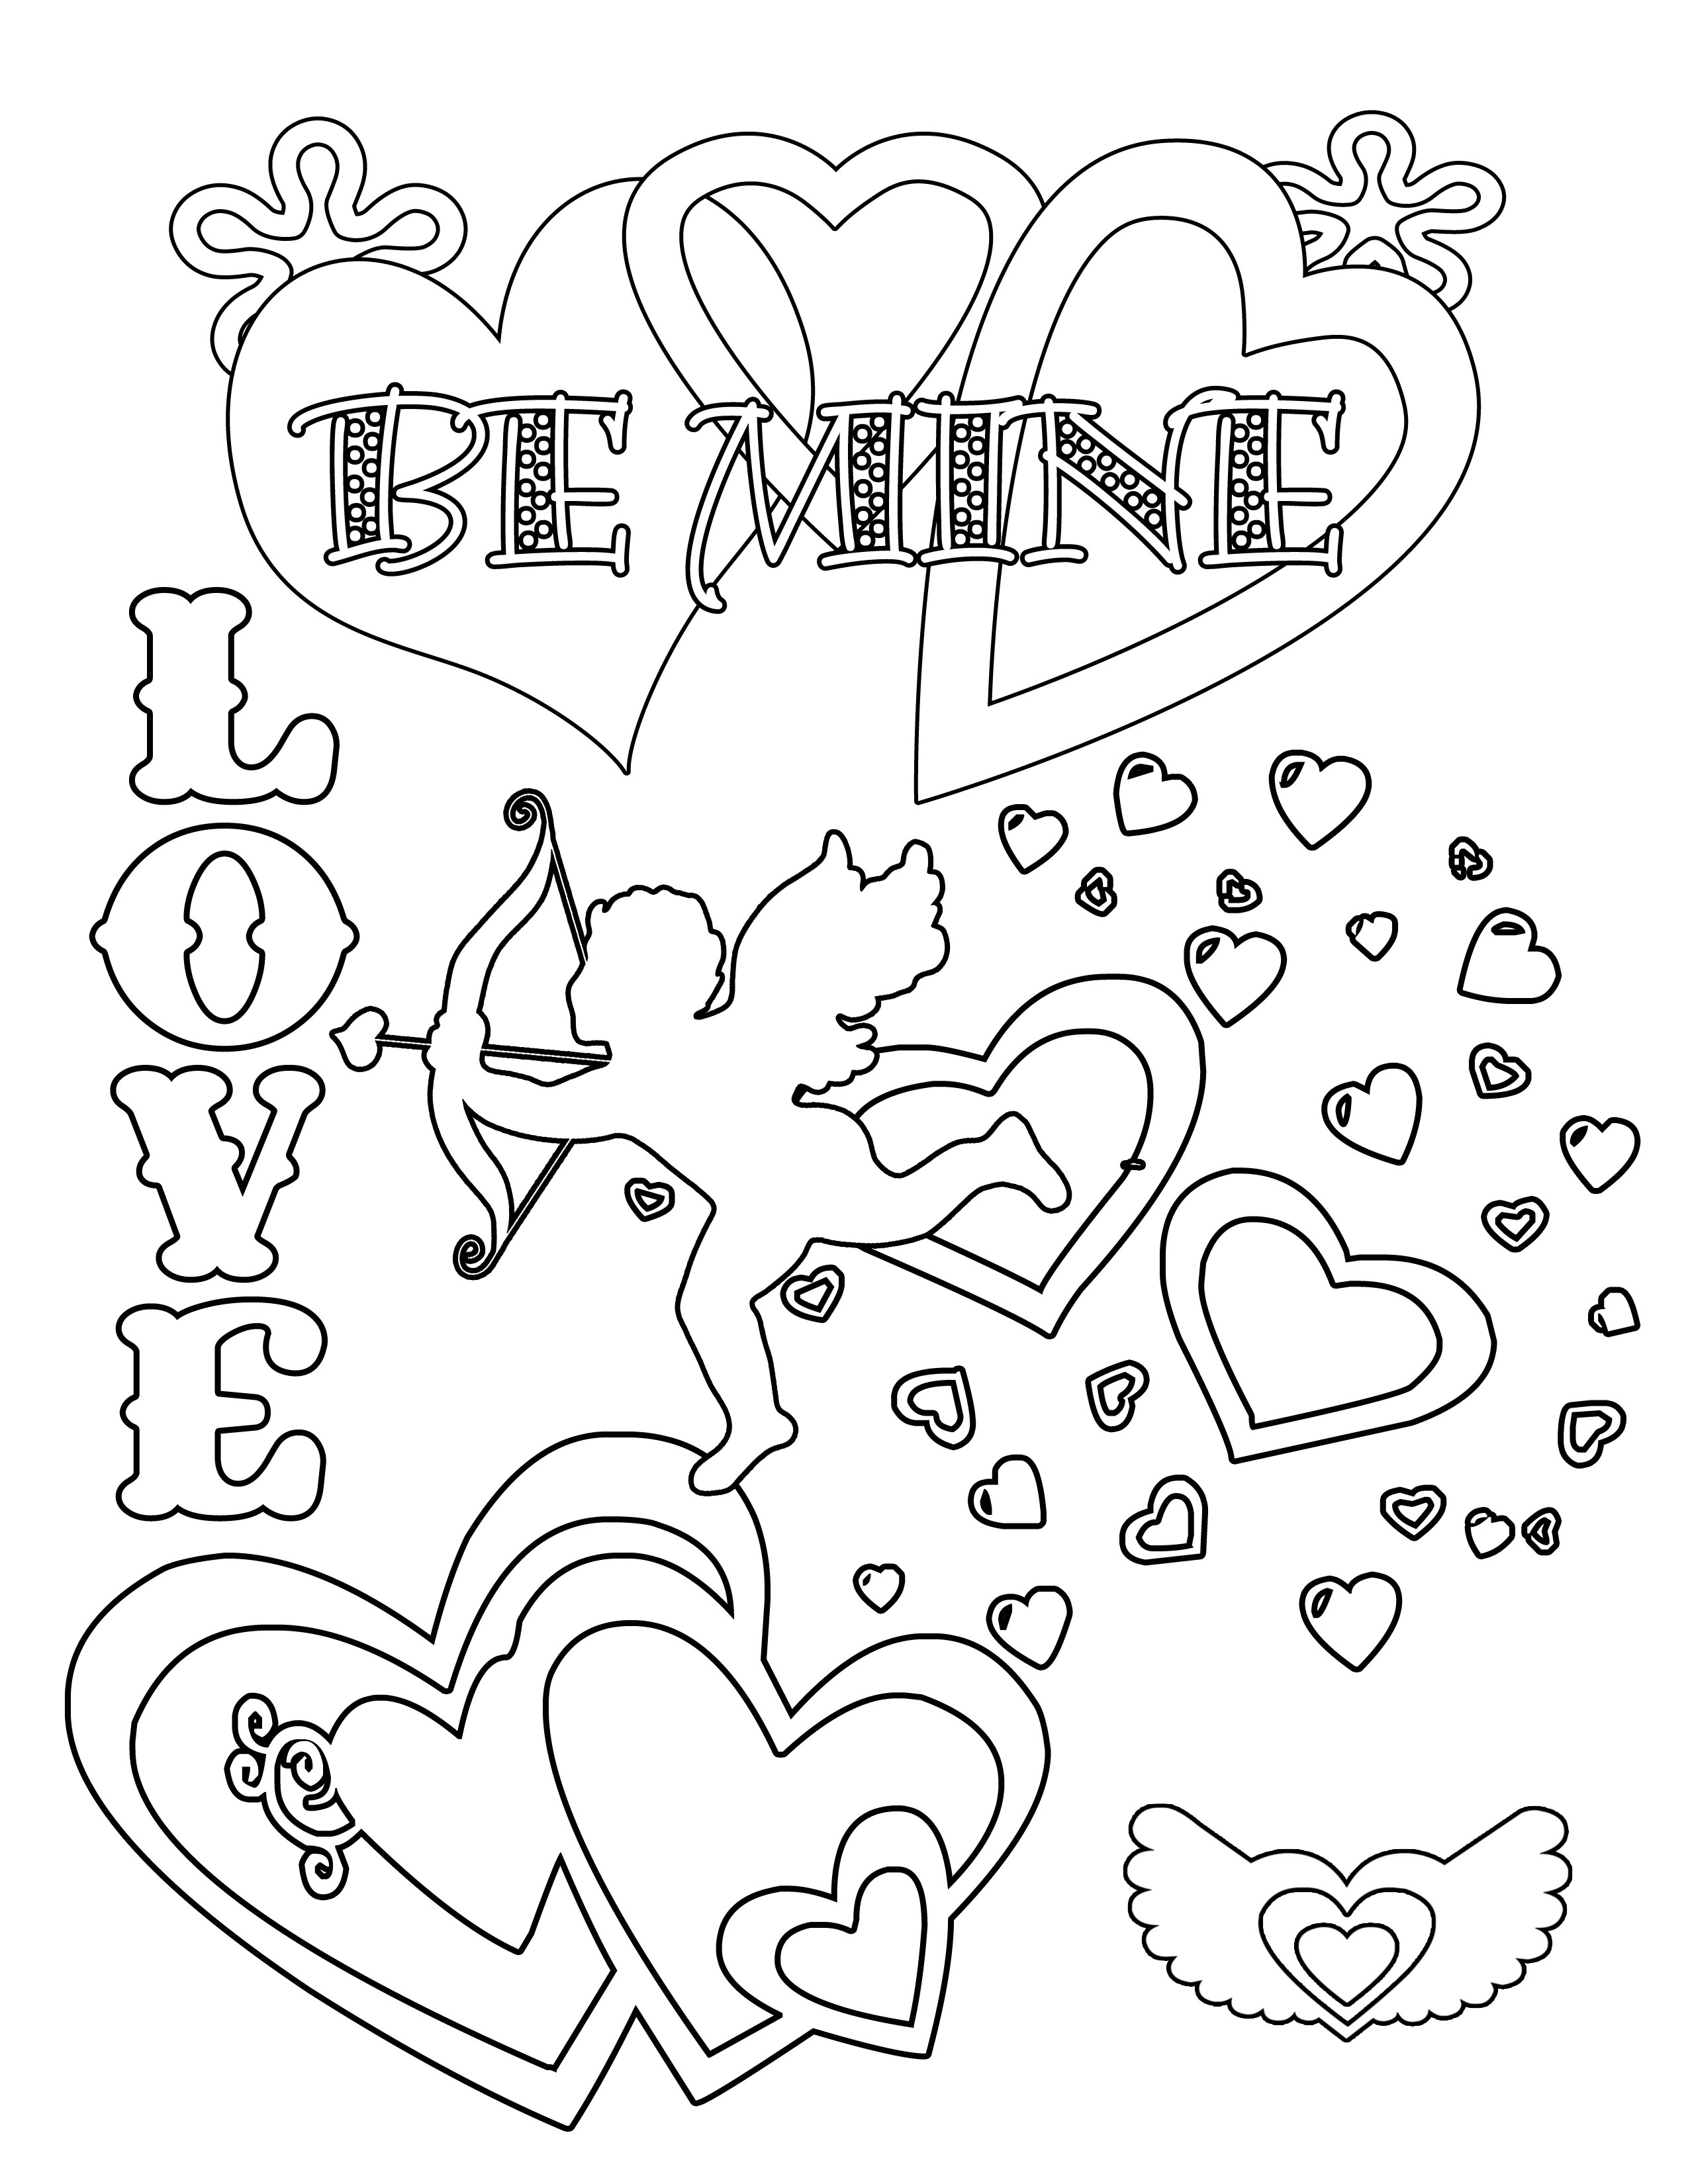 Valentines Coloring Pages Printable  Party Simplicity Free Valentines Day Coloring Pages and